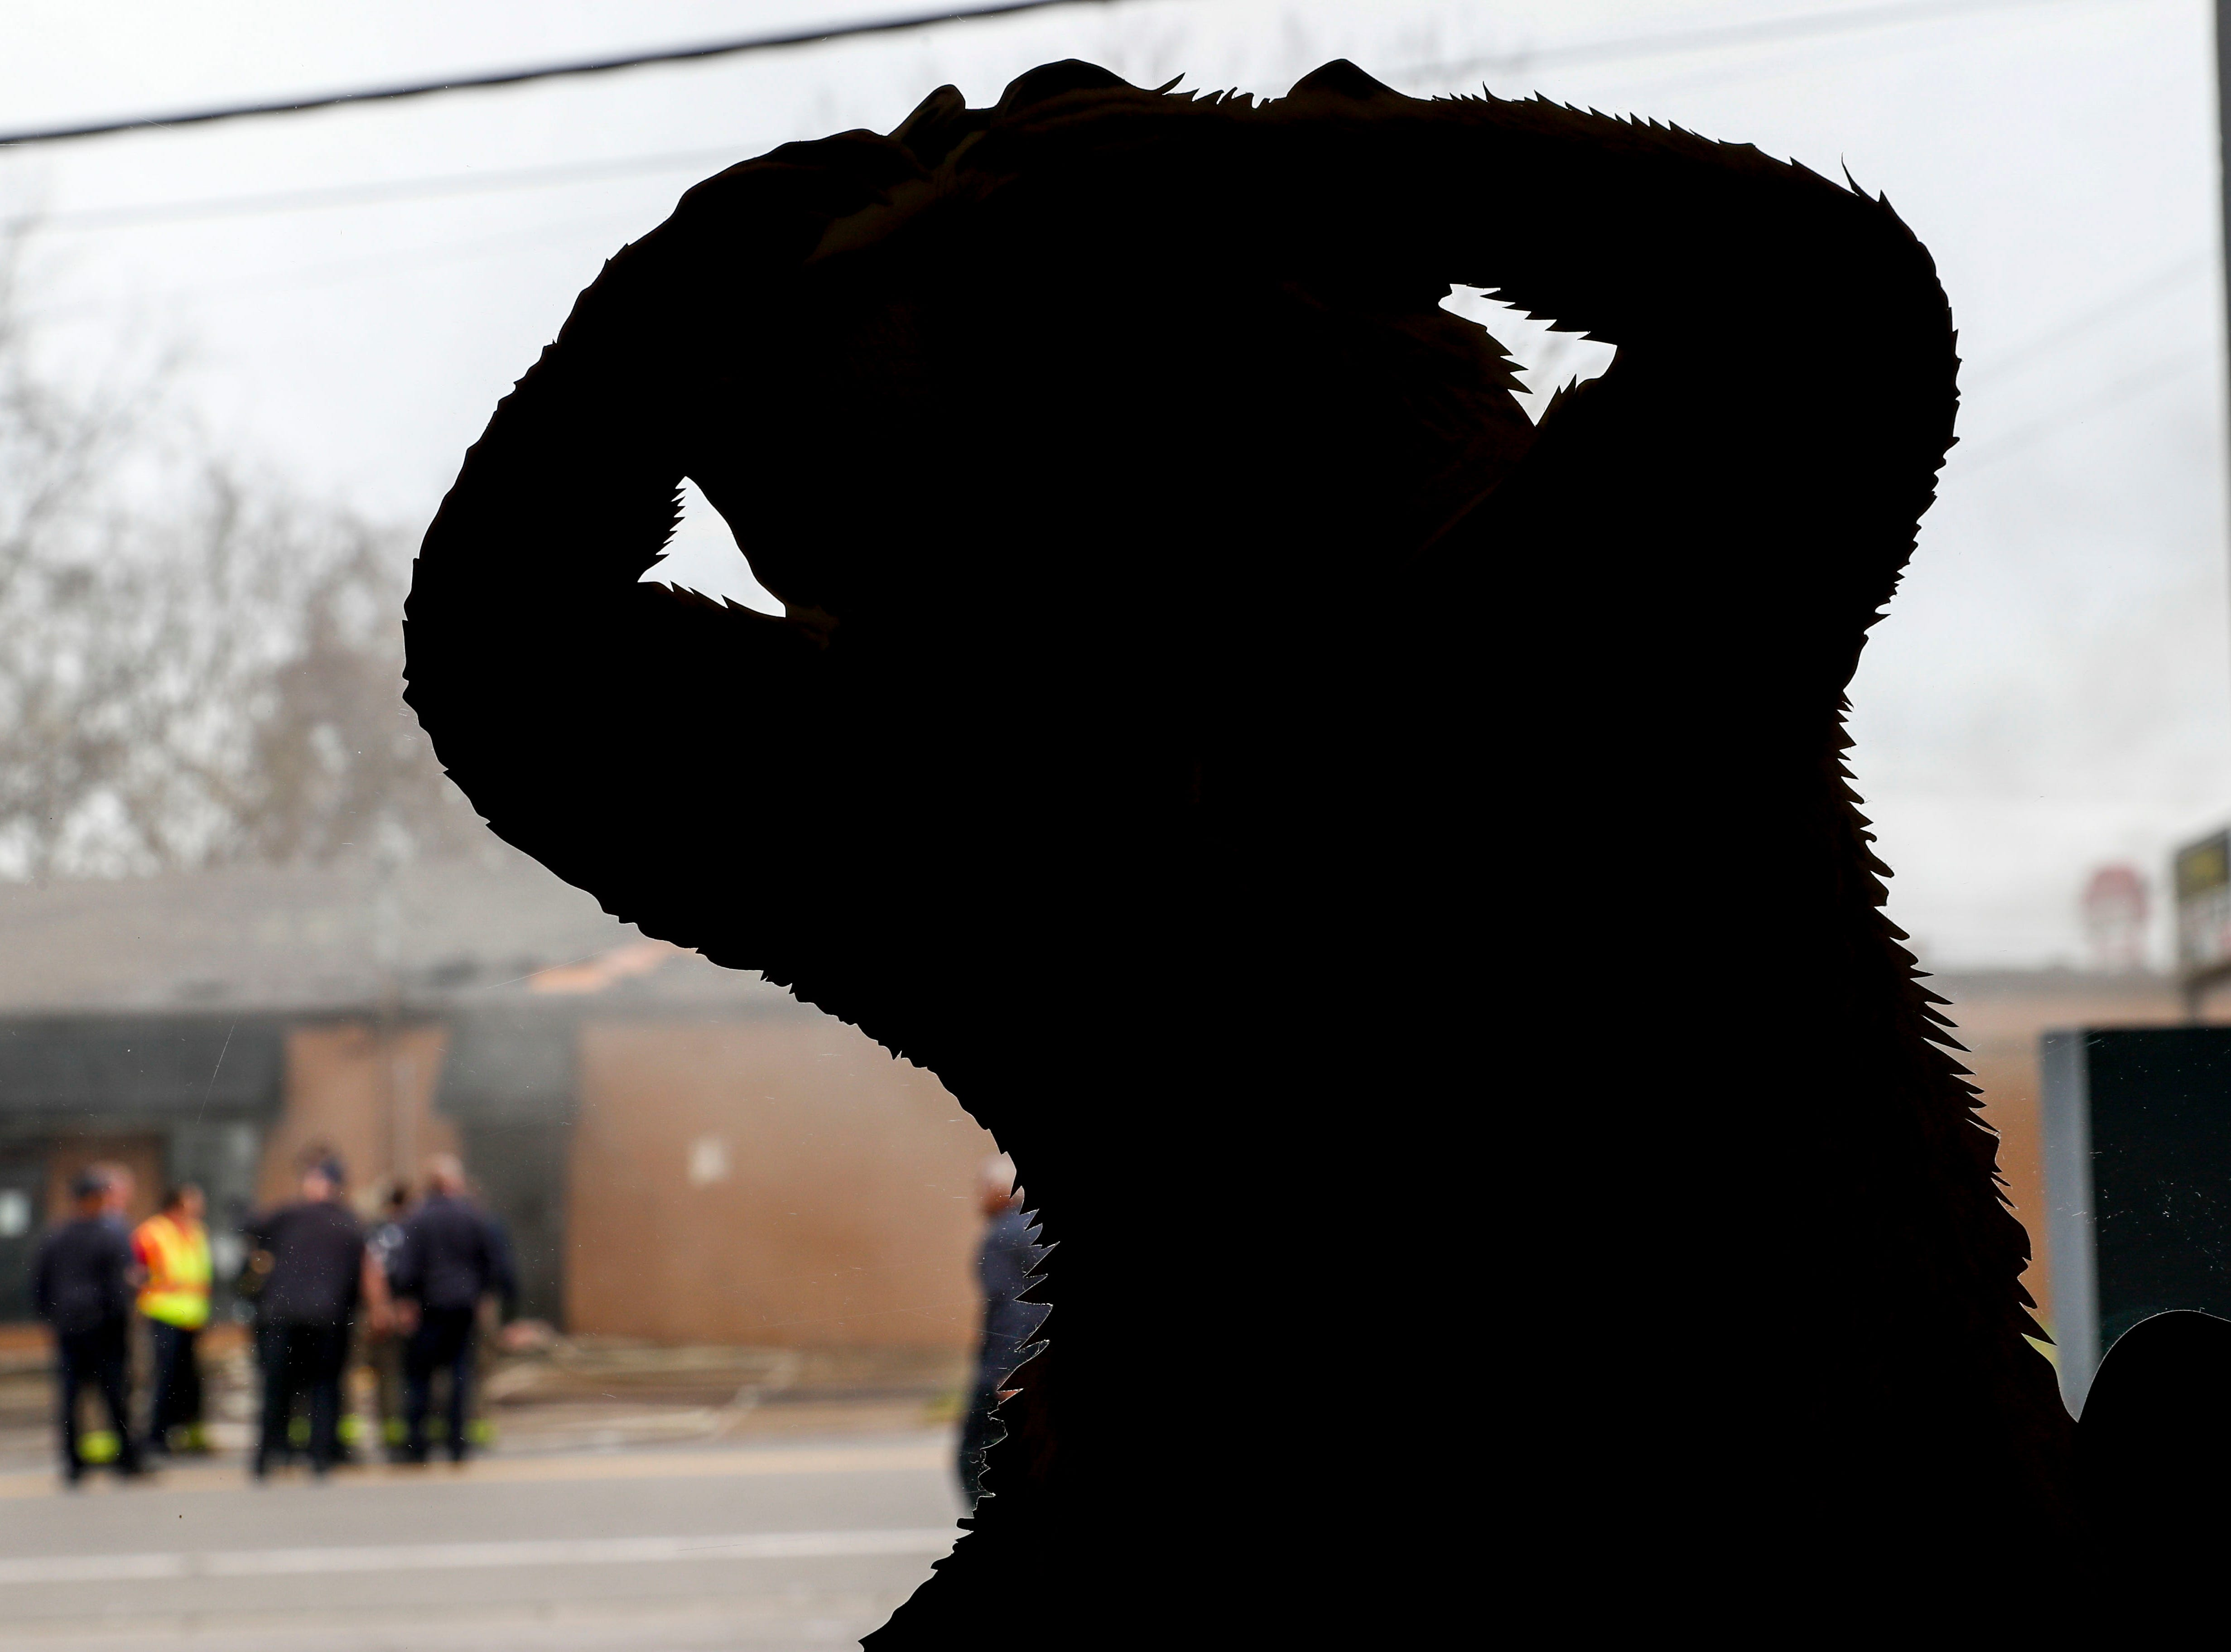 A cutout of a beaver in the window of Thomas Lumber Co appears to be reacting to the fire that damaged the shooting range at Clarksville Guns & Archery in Clarksville, Tenn., on Tuesday, March 12, 2019.